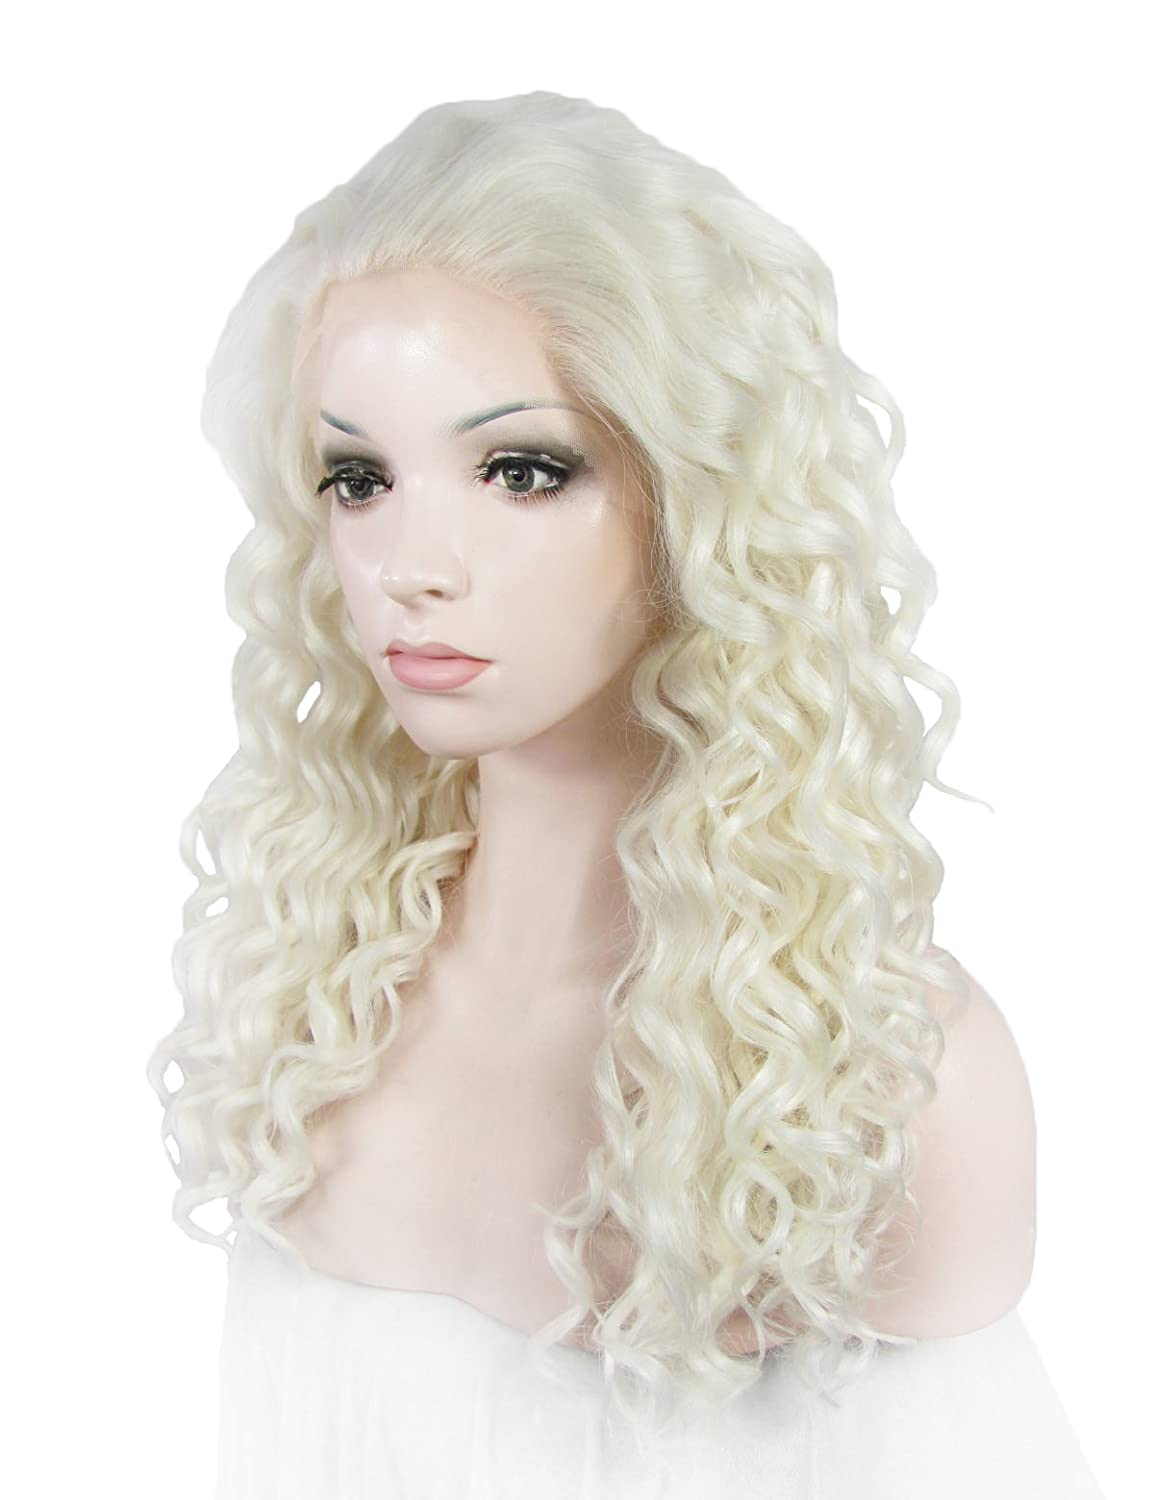 Amazon.com : Imstyle Lolita Wig Synthetic Wigs Medium Curly Dairy Queen Cosplay White cospaly Lace Wig : Beauty